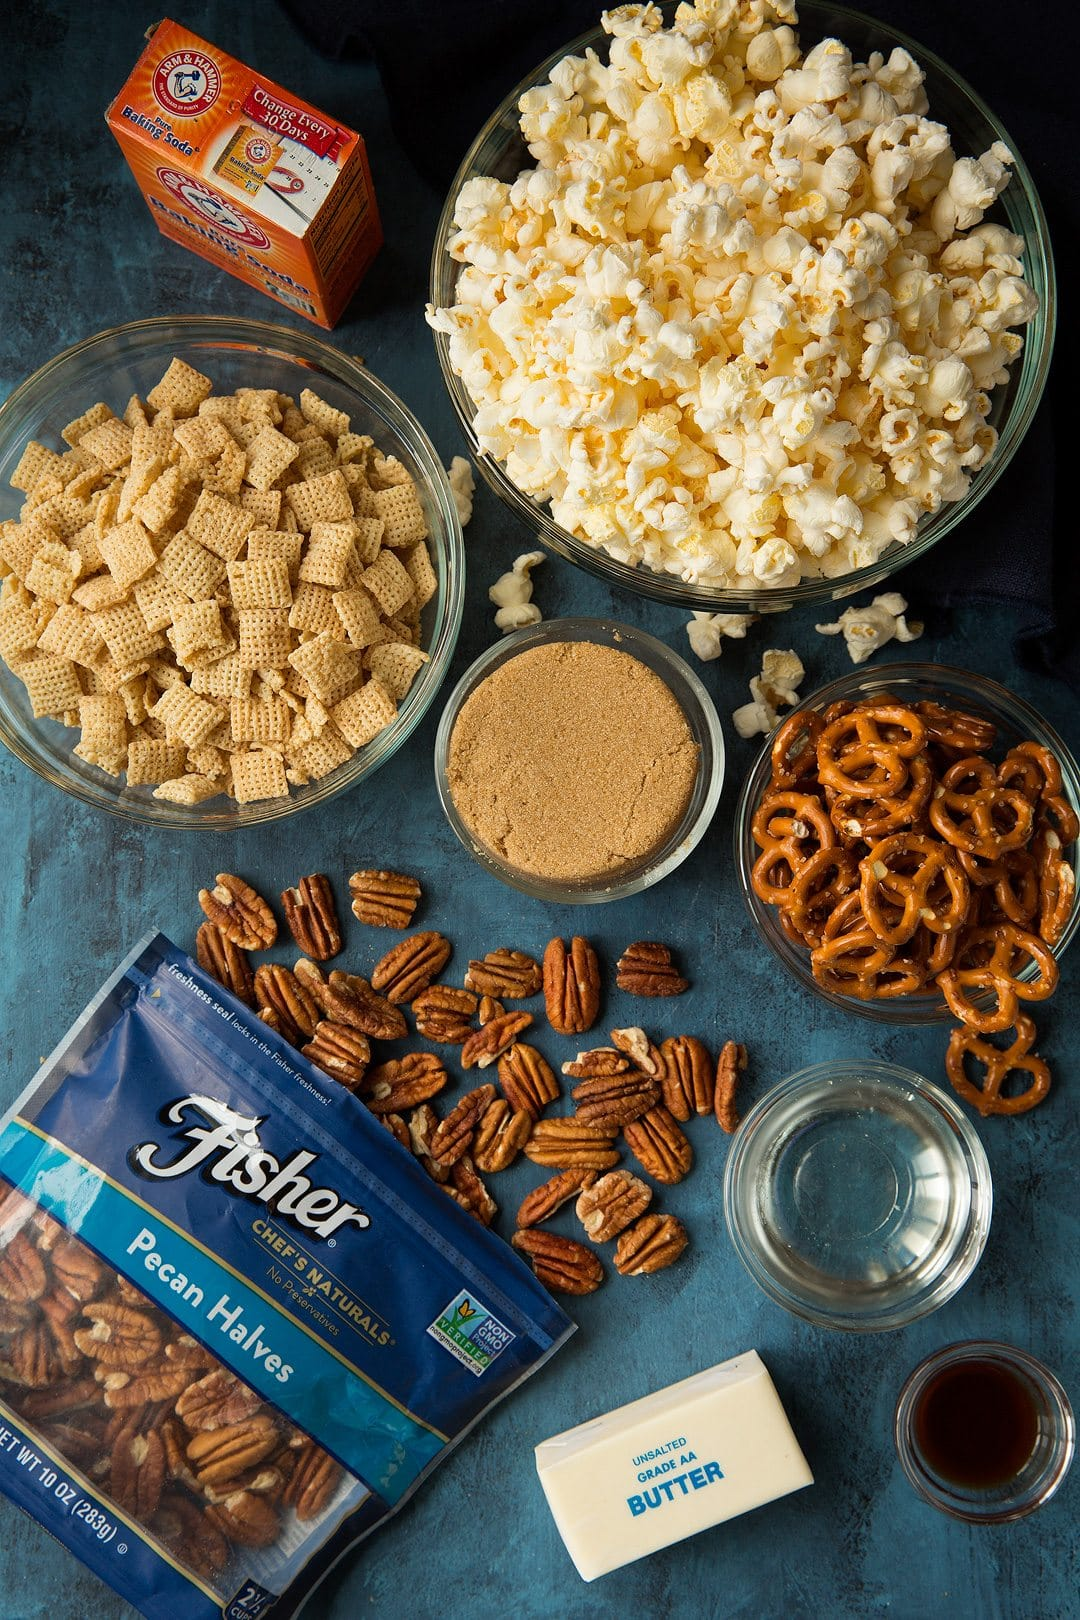 Crunchy Caramel Corn Snack Mix ingredients shown here.